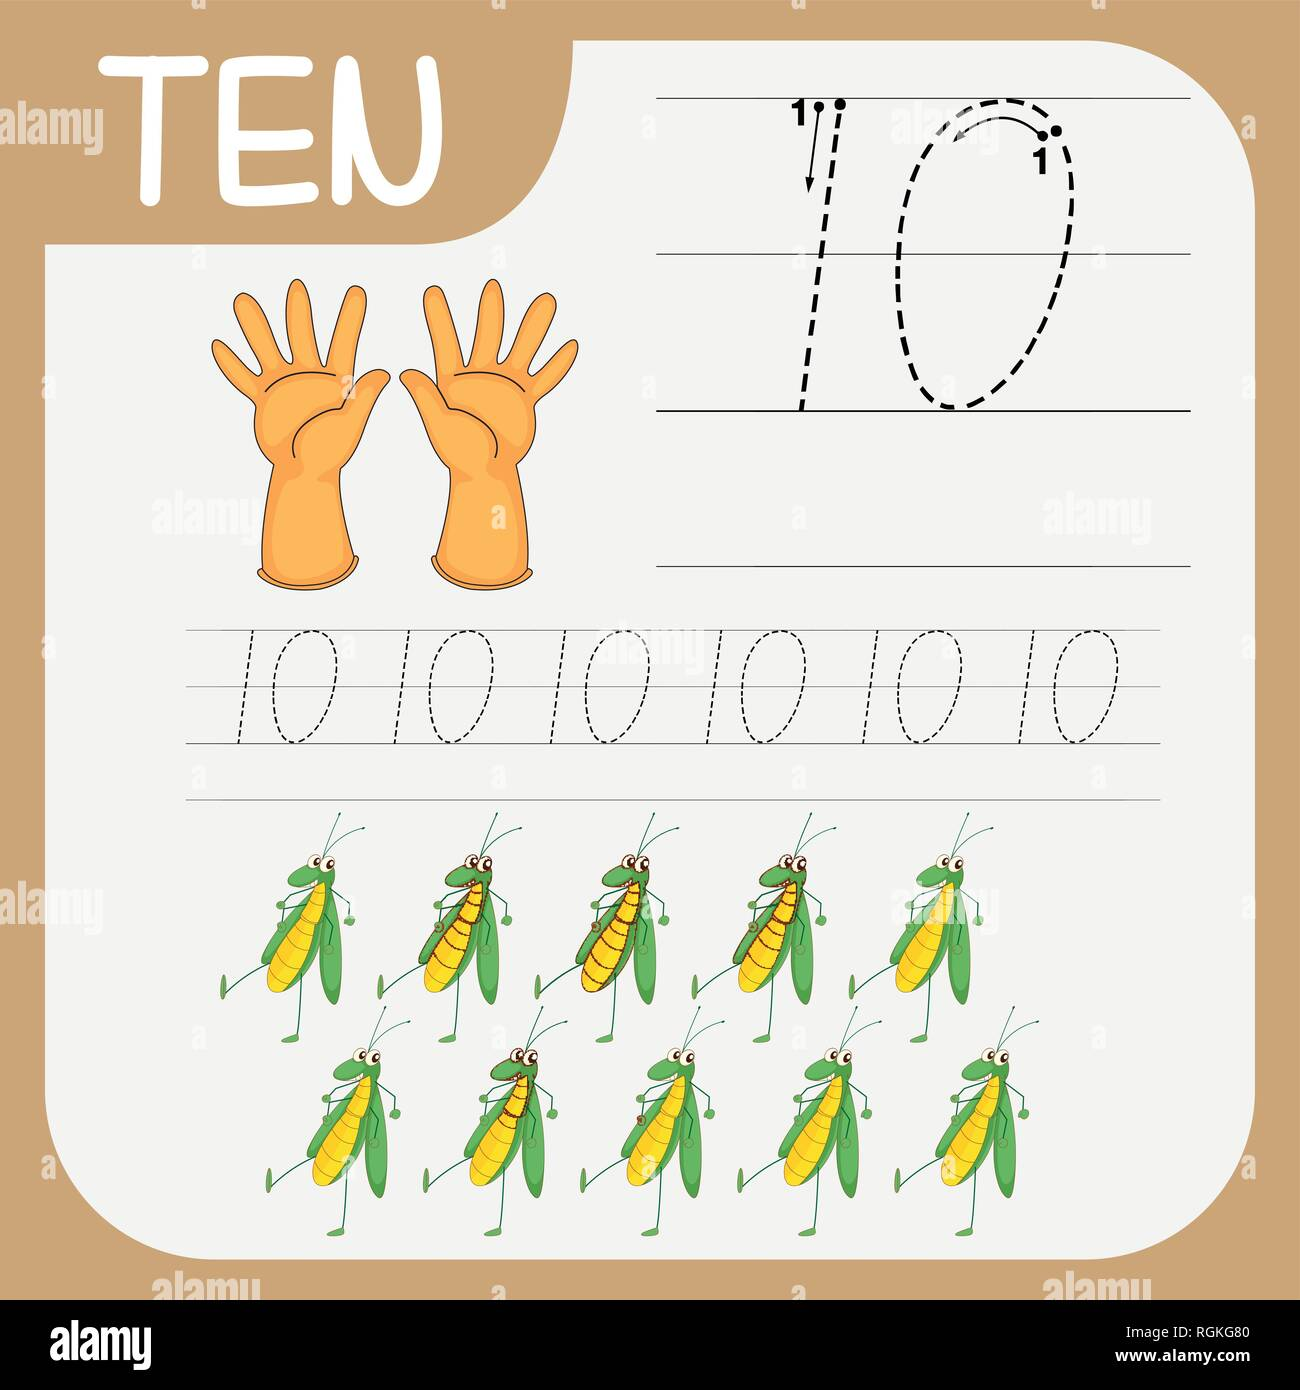 Number Ten Tracing Worksheets Illustration Stock Vector